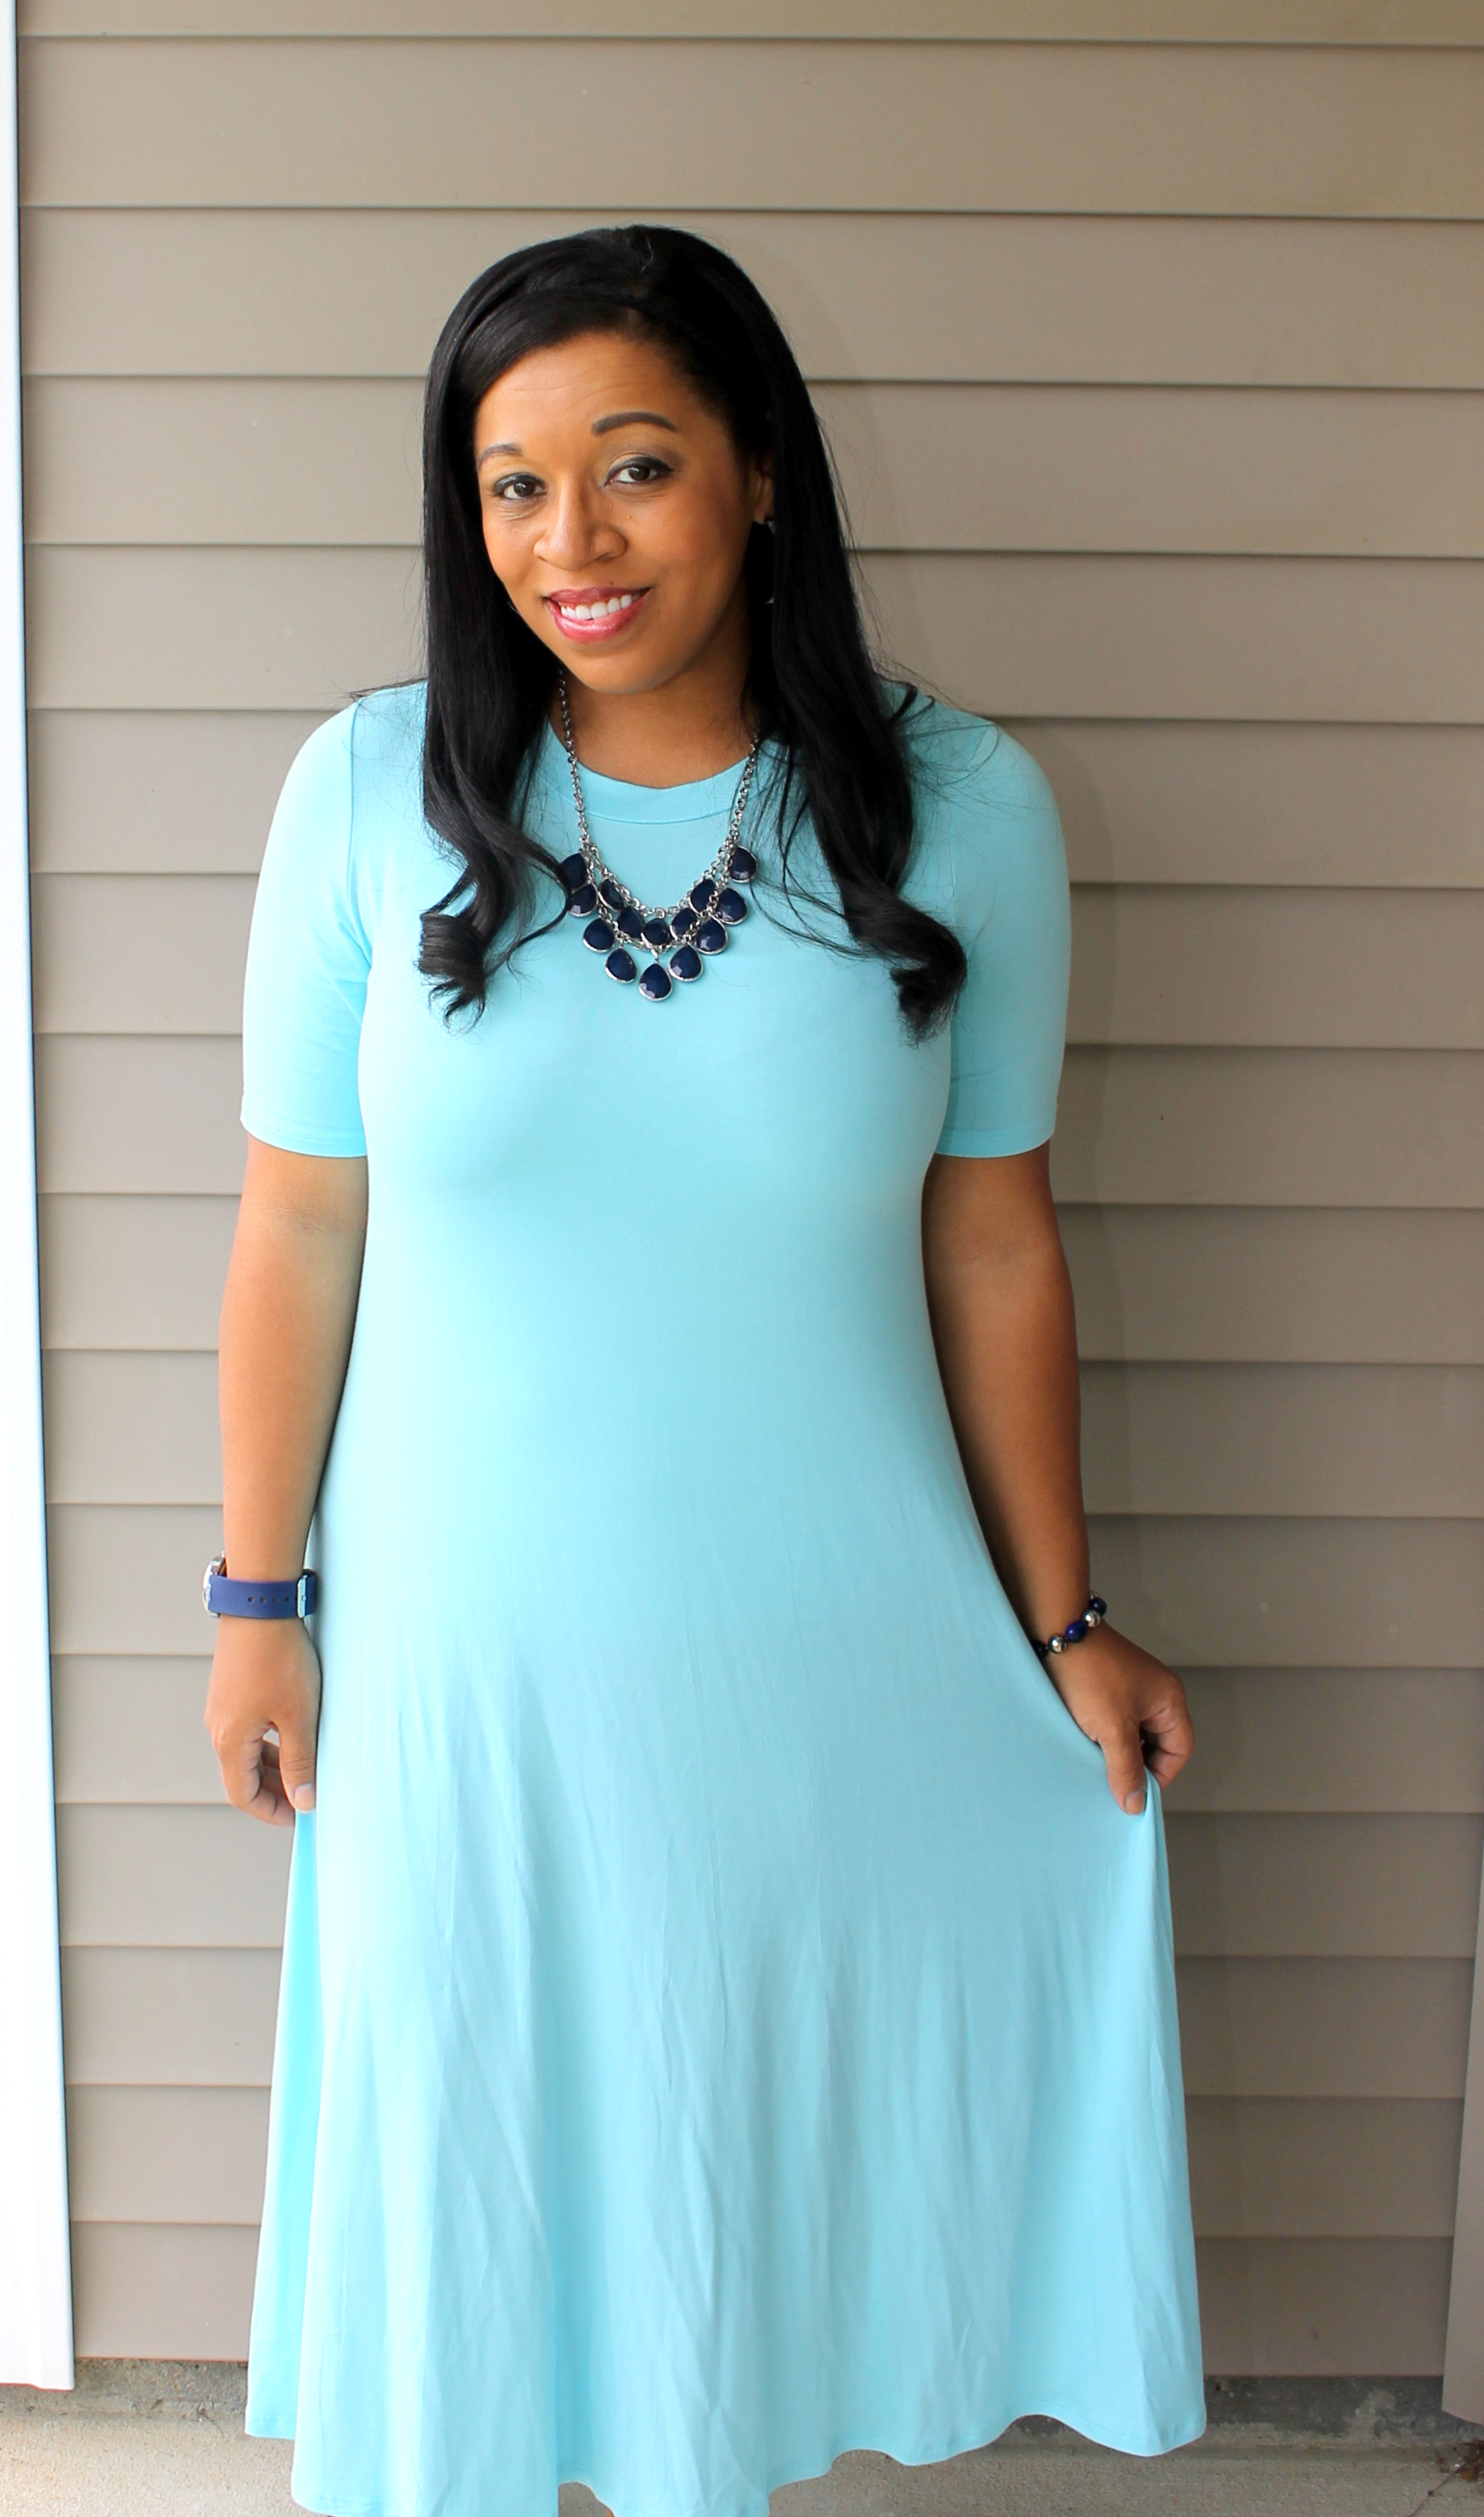 modest swing dress in the perfect shade of pastel blue. Great for spring